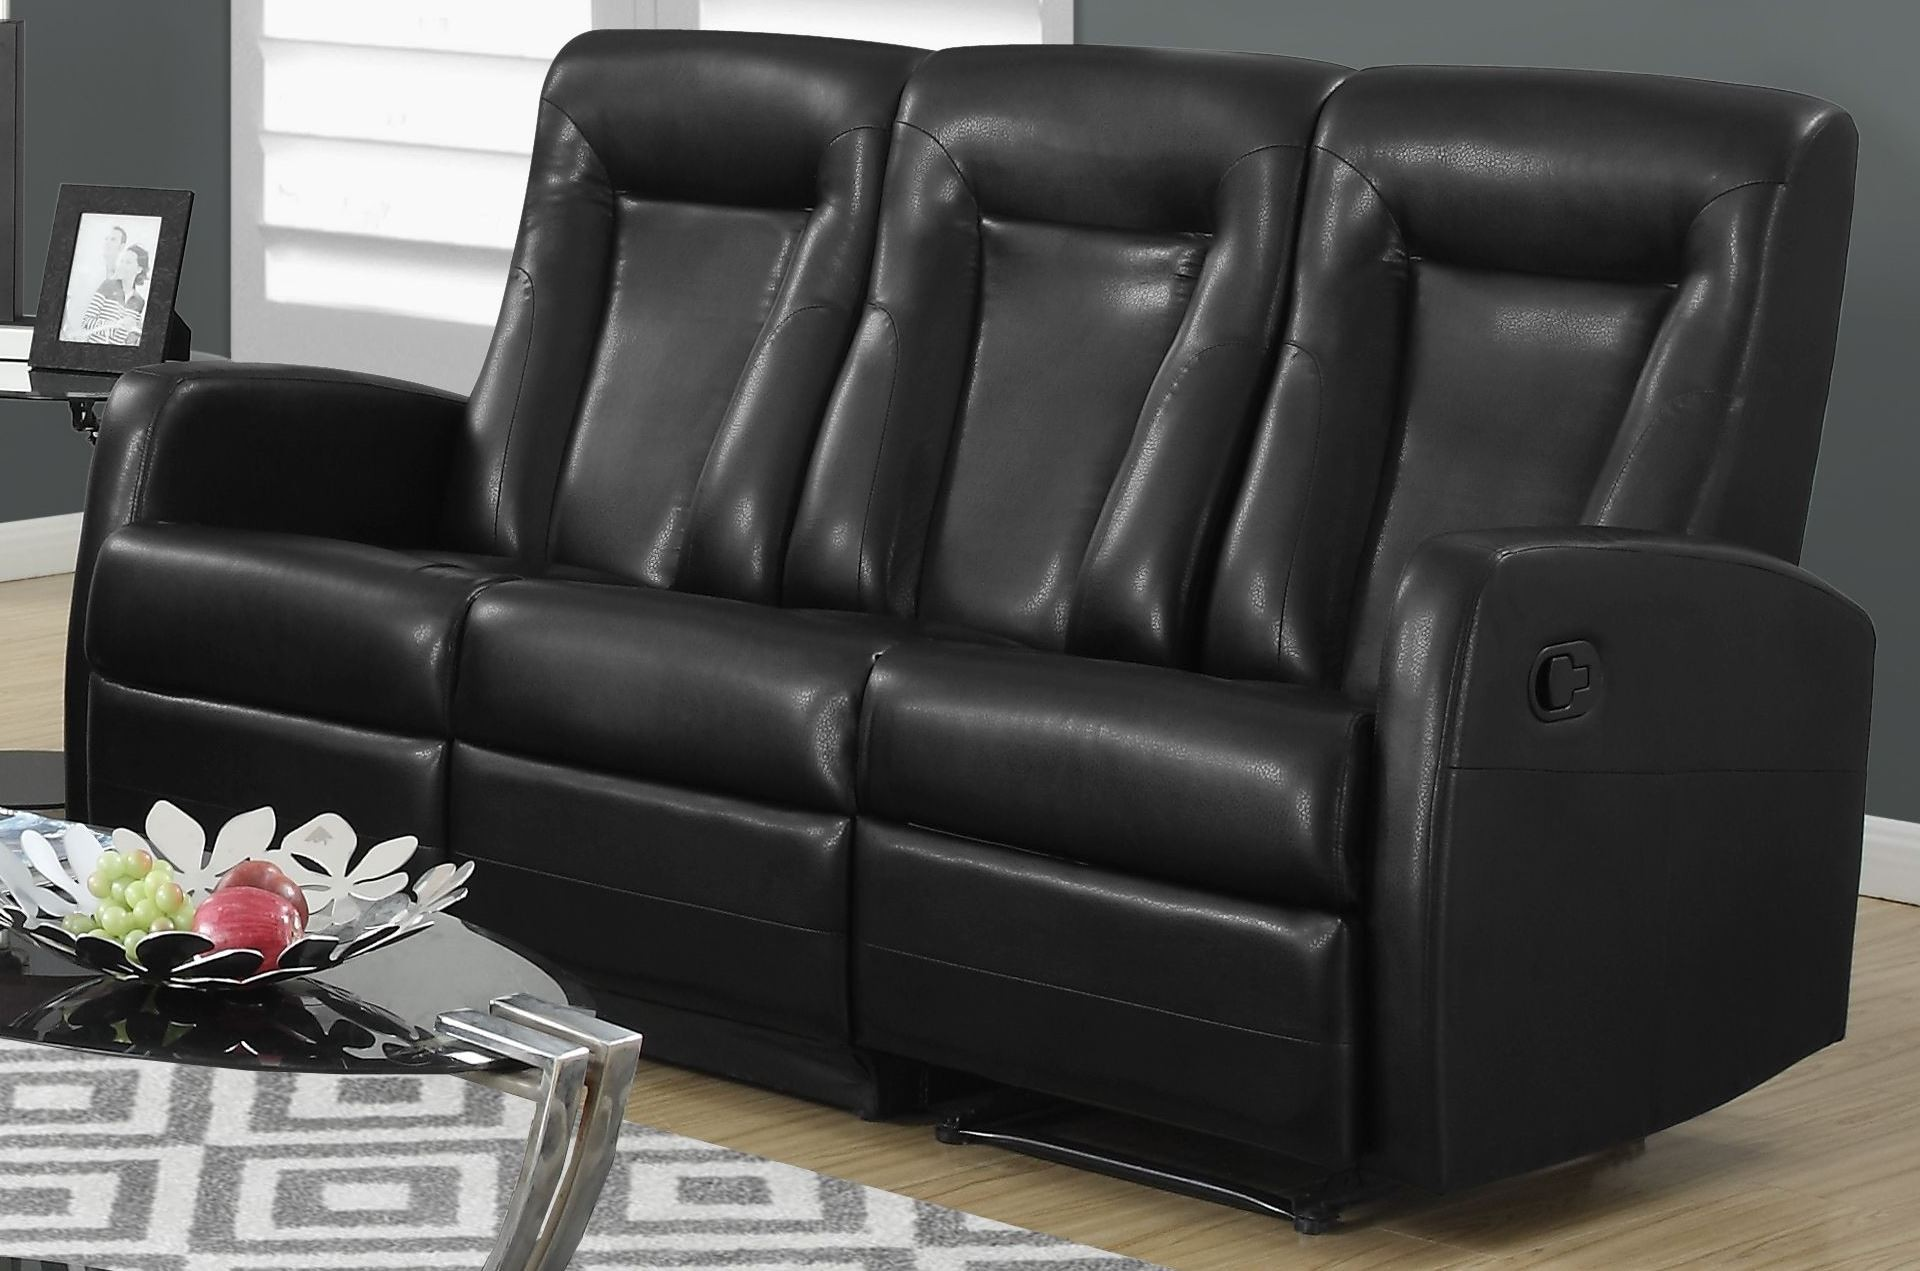 82bk 3 black bonded leather reclining sofa 82bk 3 monarch